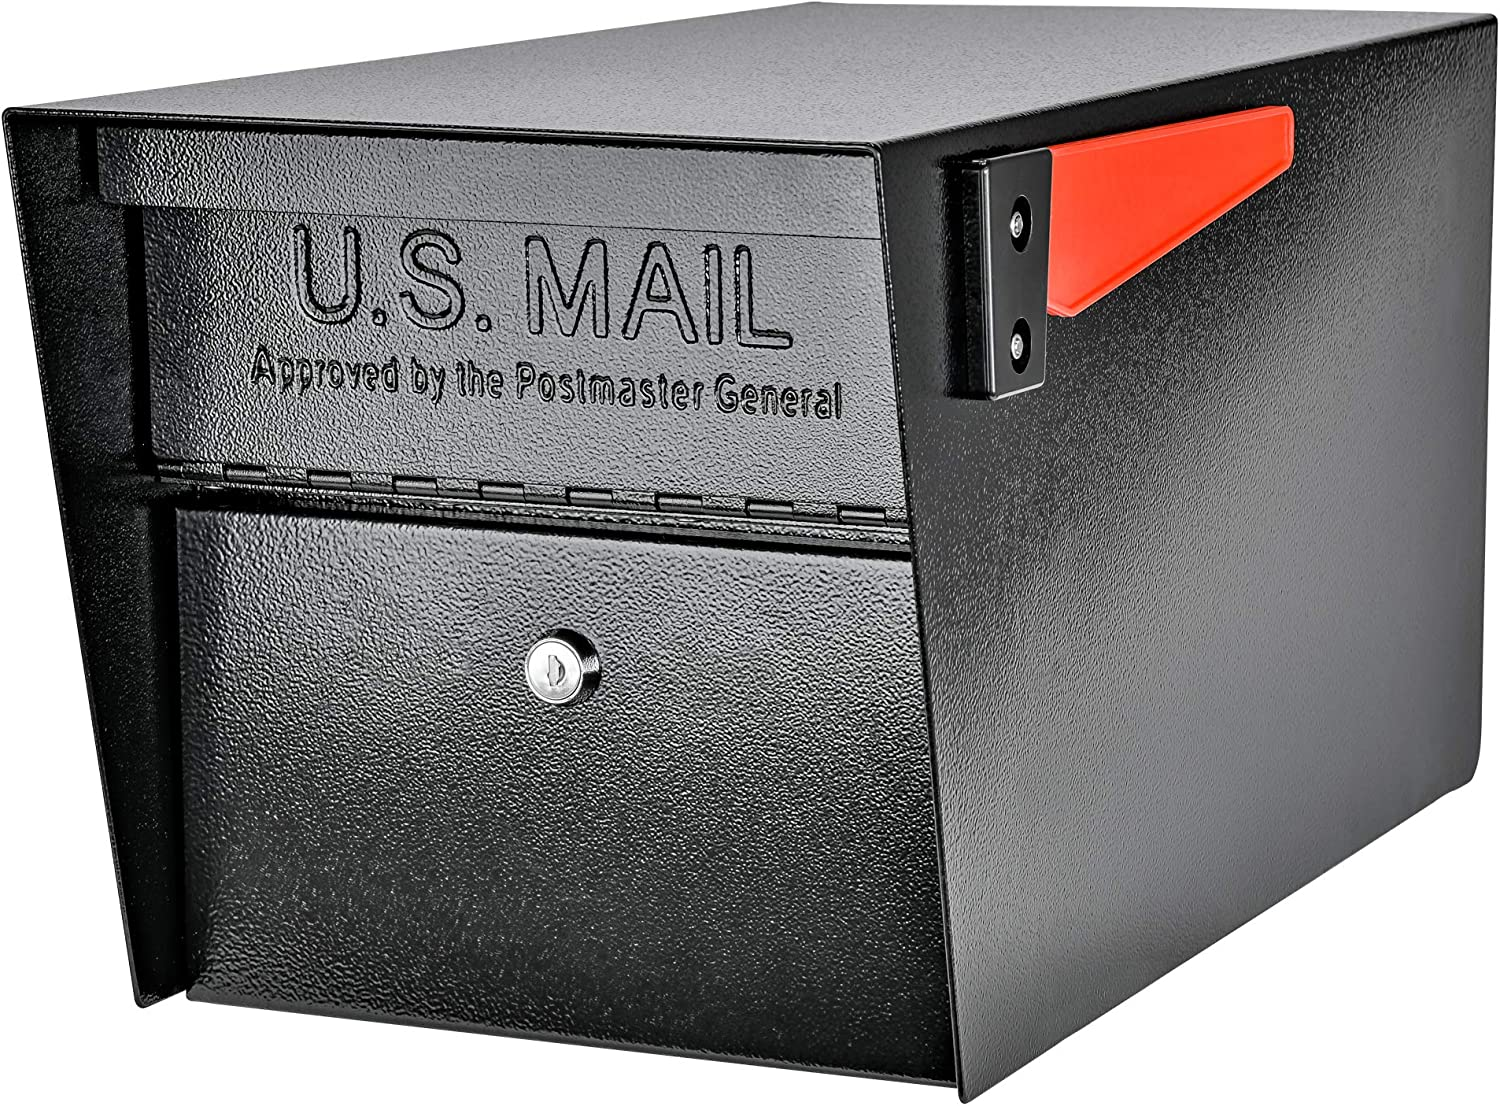 NEW Black Mail Boss 7506 Mail Manager Steel Curbside Locking Security Mailbox